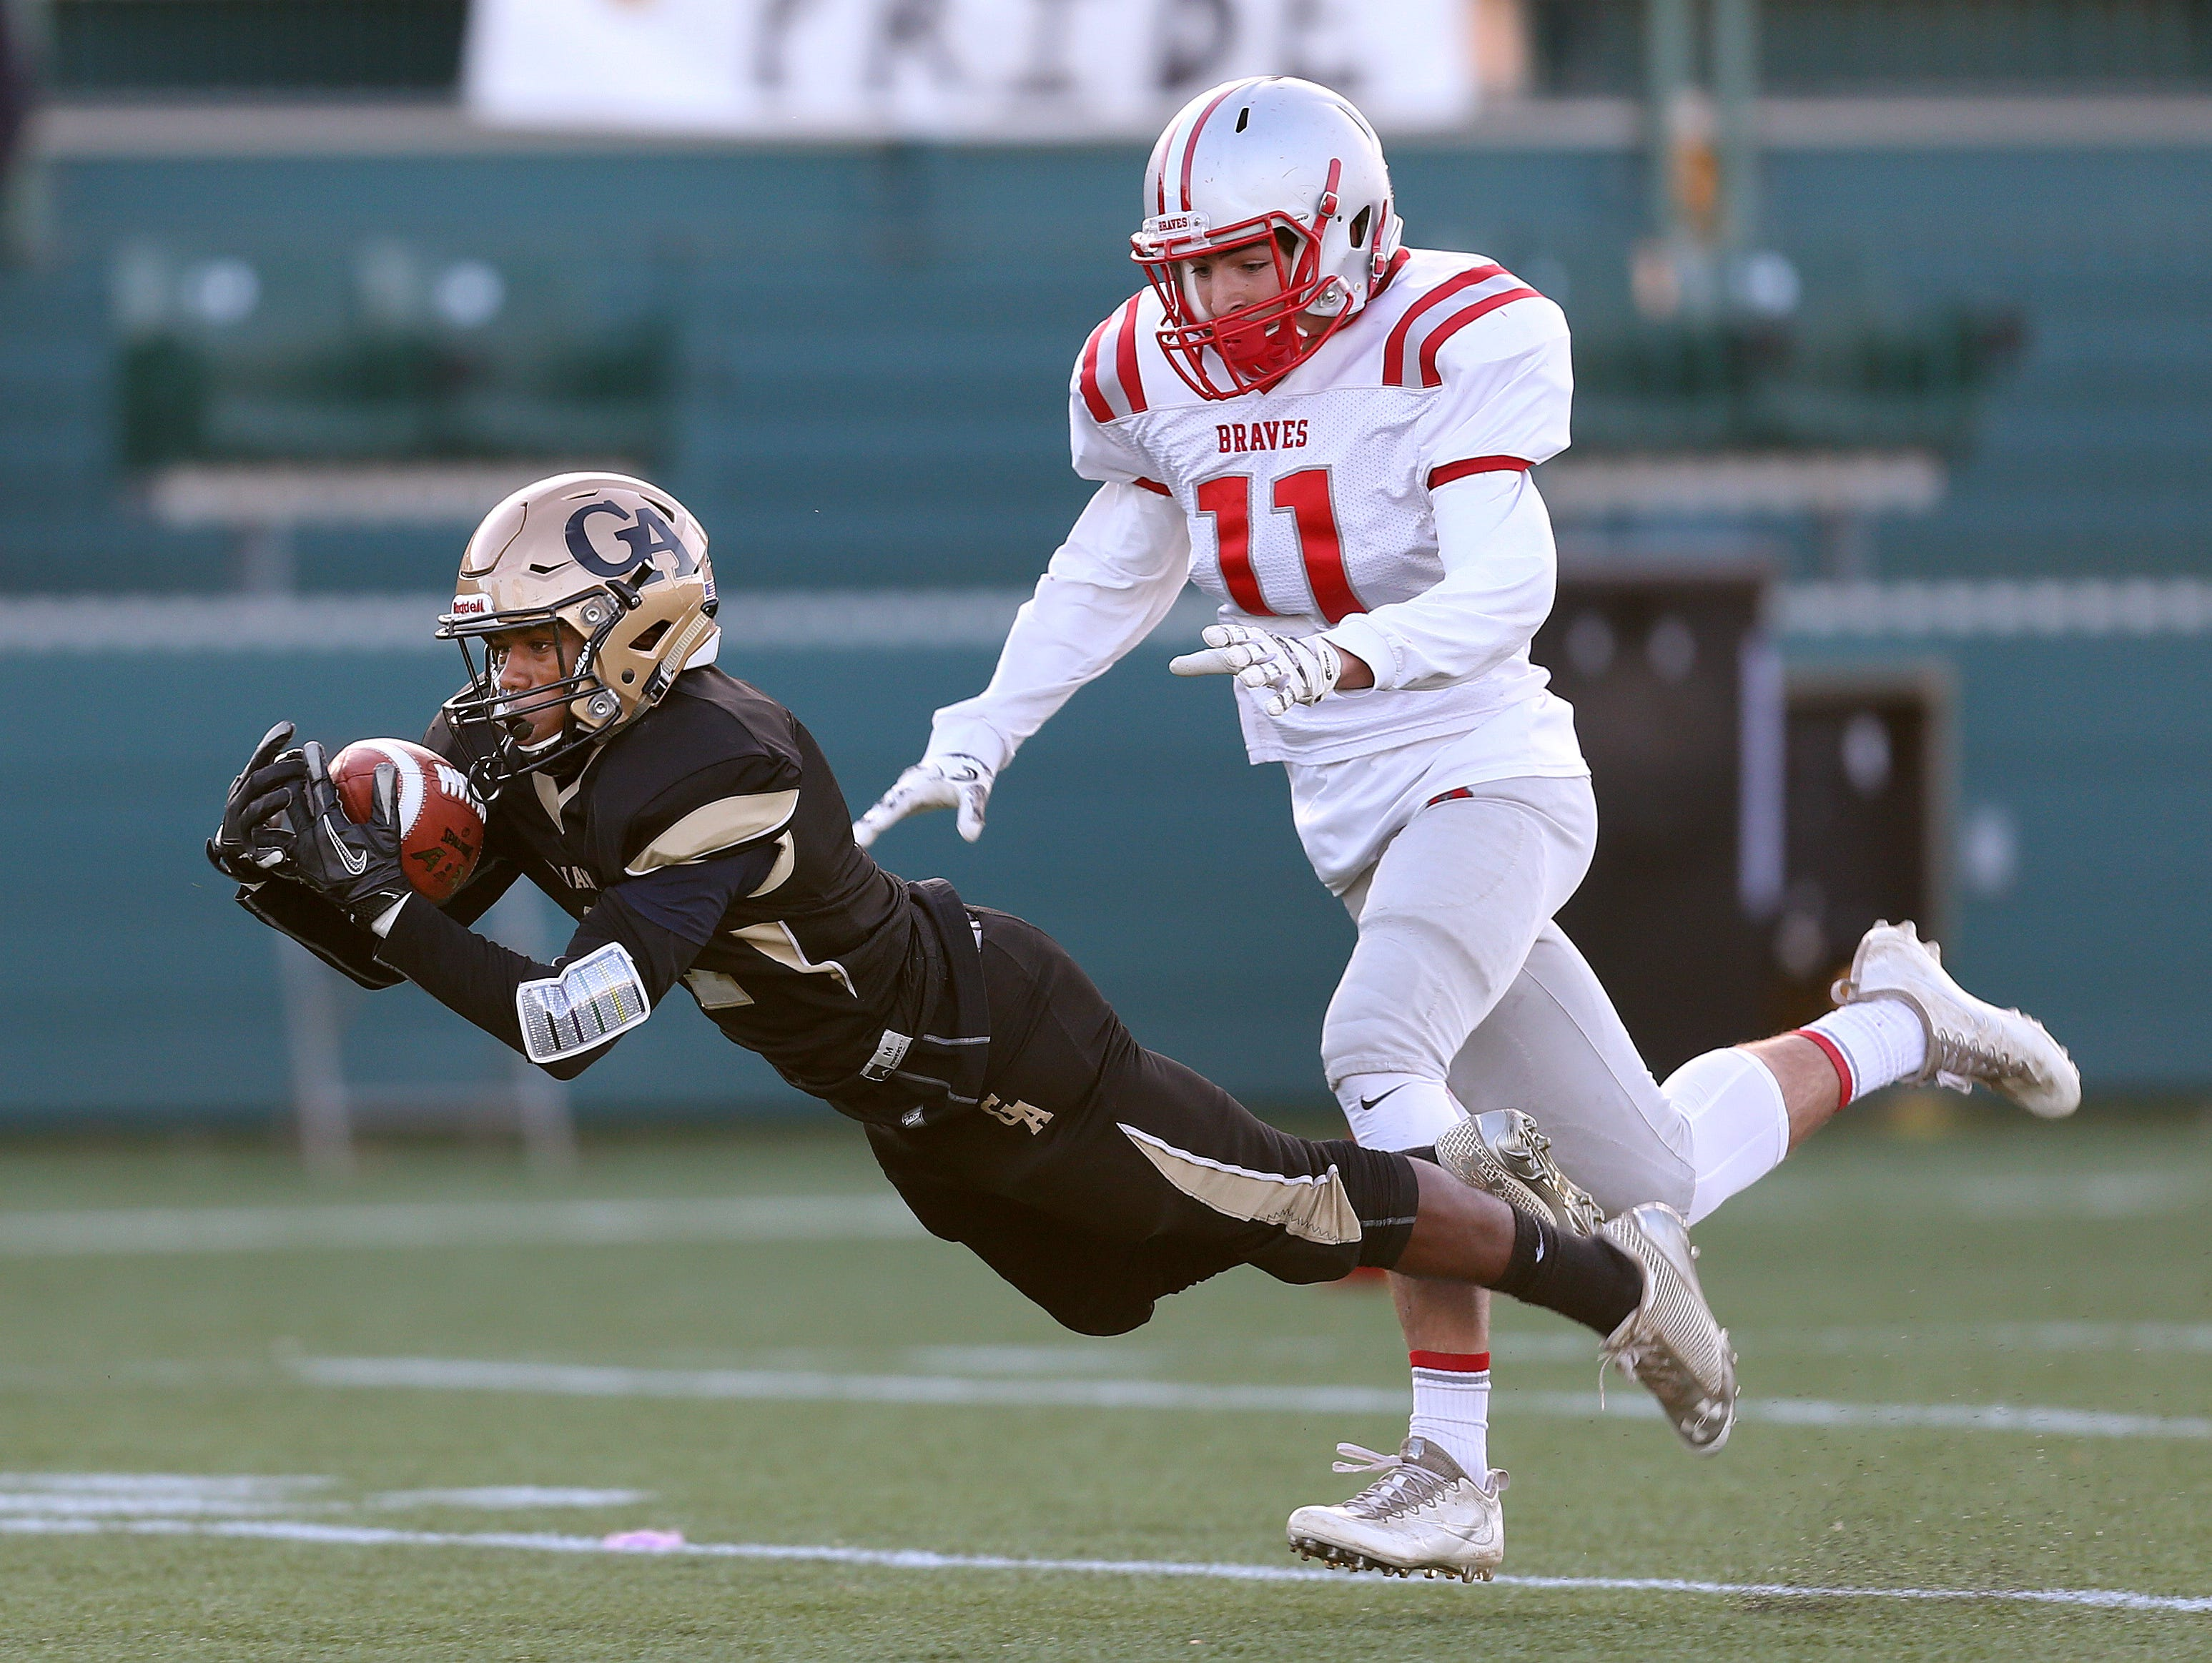 Athena's Kenny Speed (4) makes a diving catch against Canandaigua's Carson Greene (11) to help set up a touchdown.